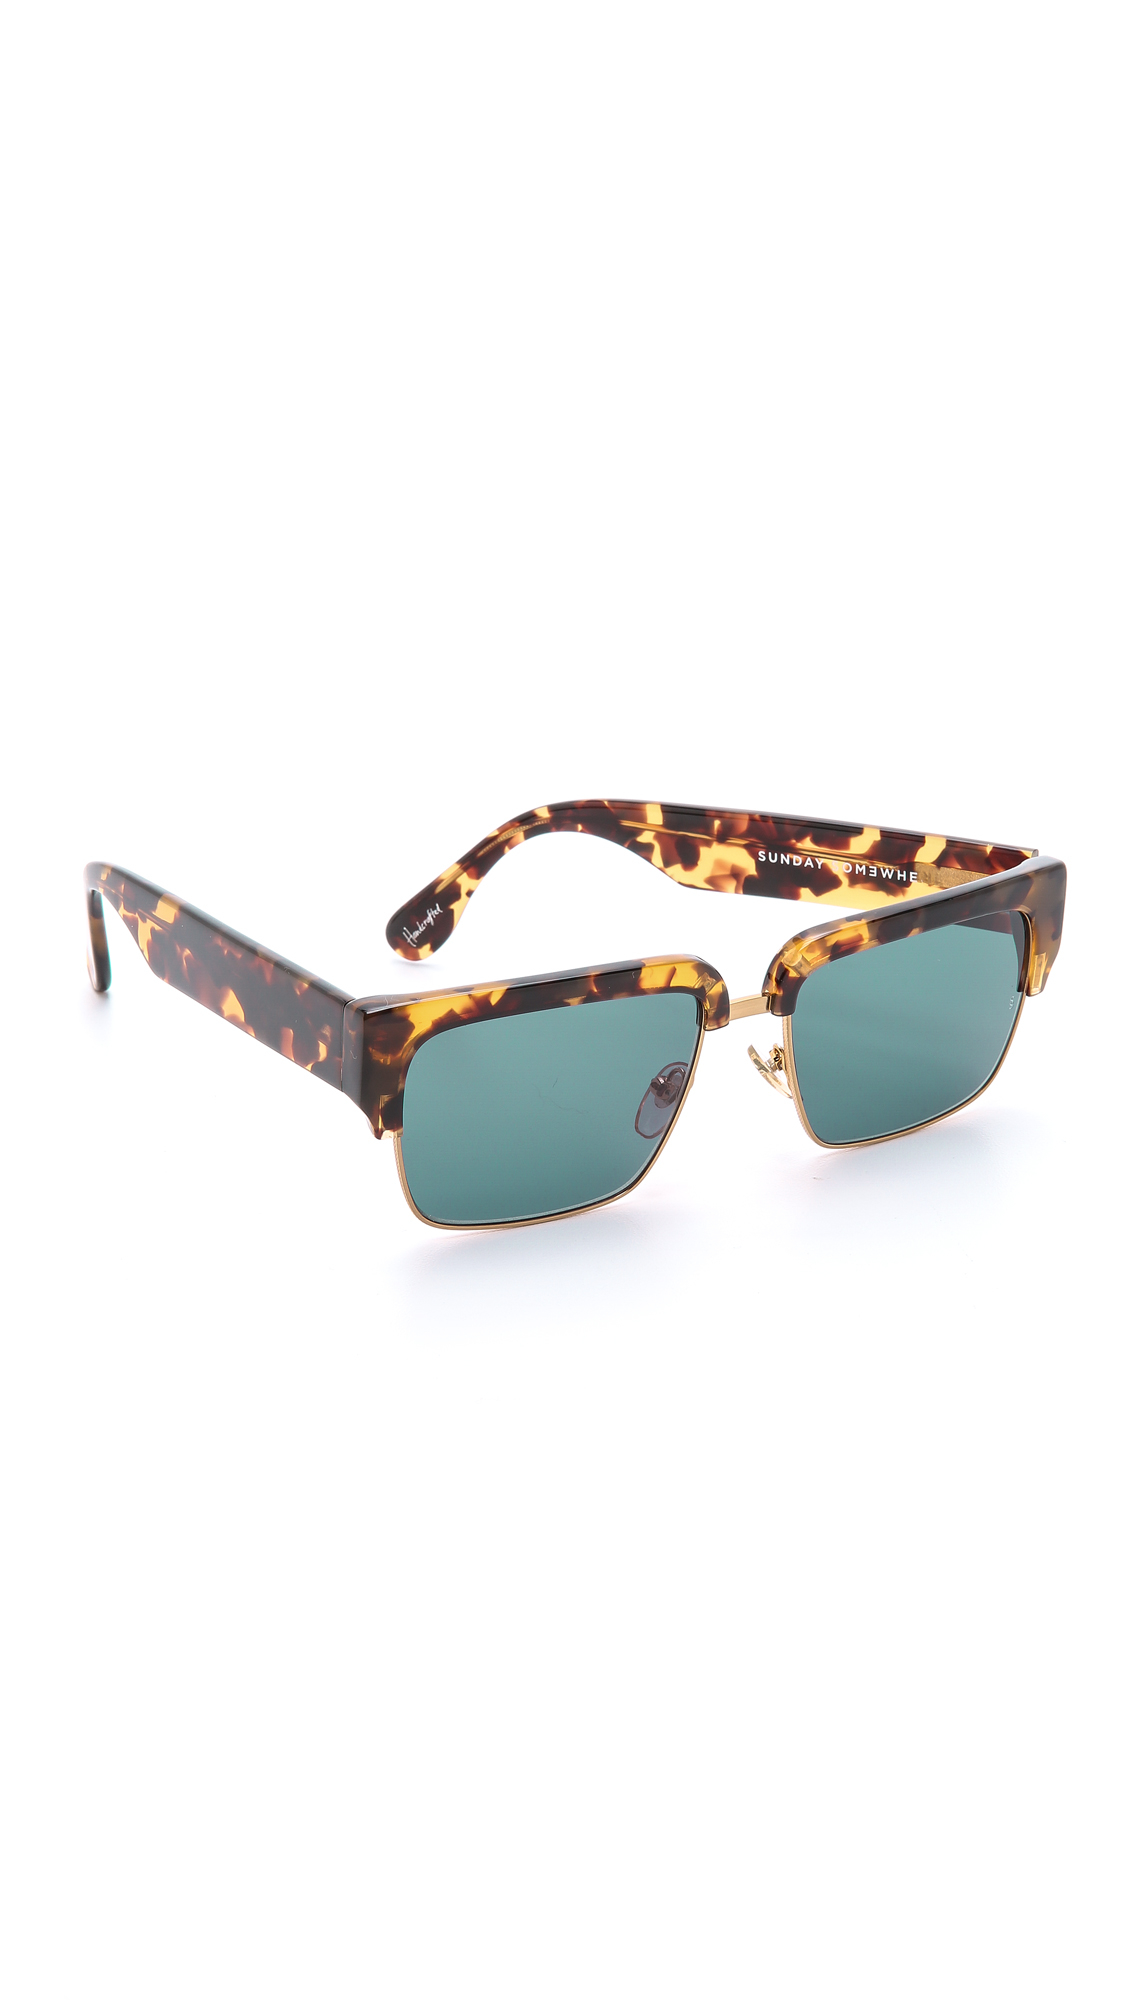 Sunday Somewhere Little God Sunglasses - Black/dark Grey in Brown